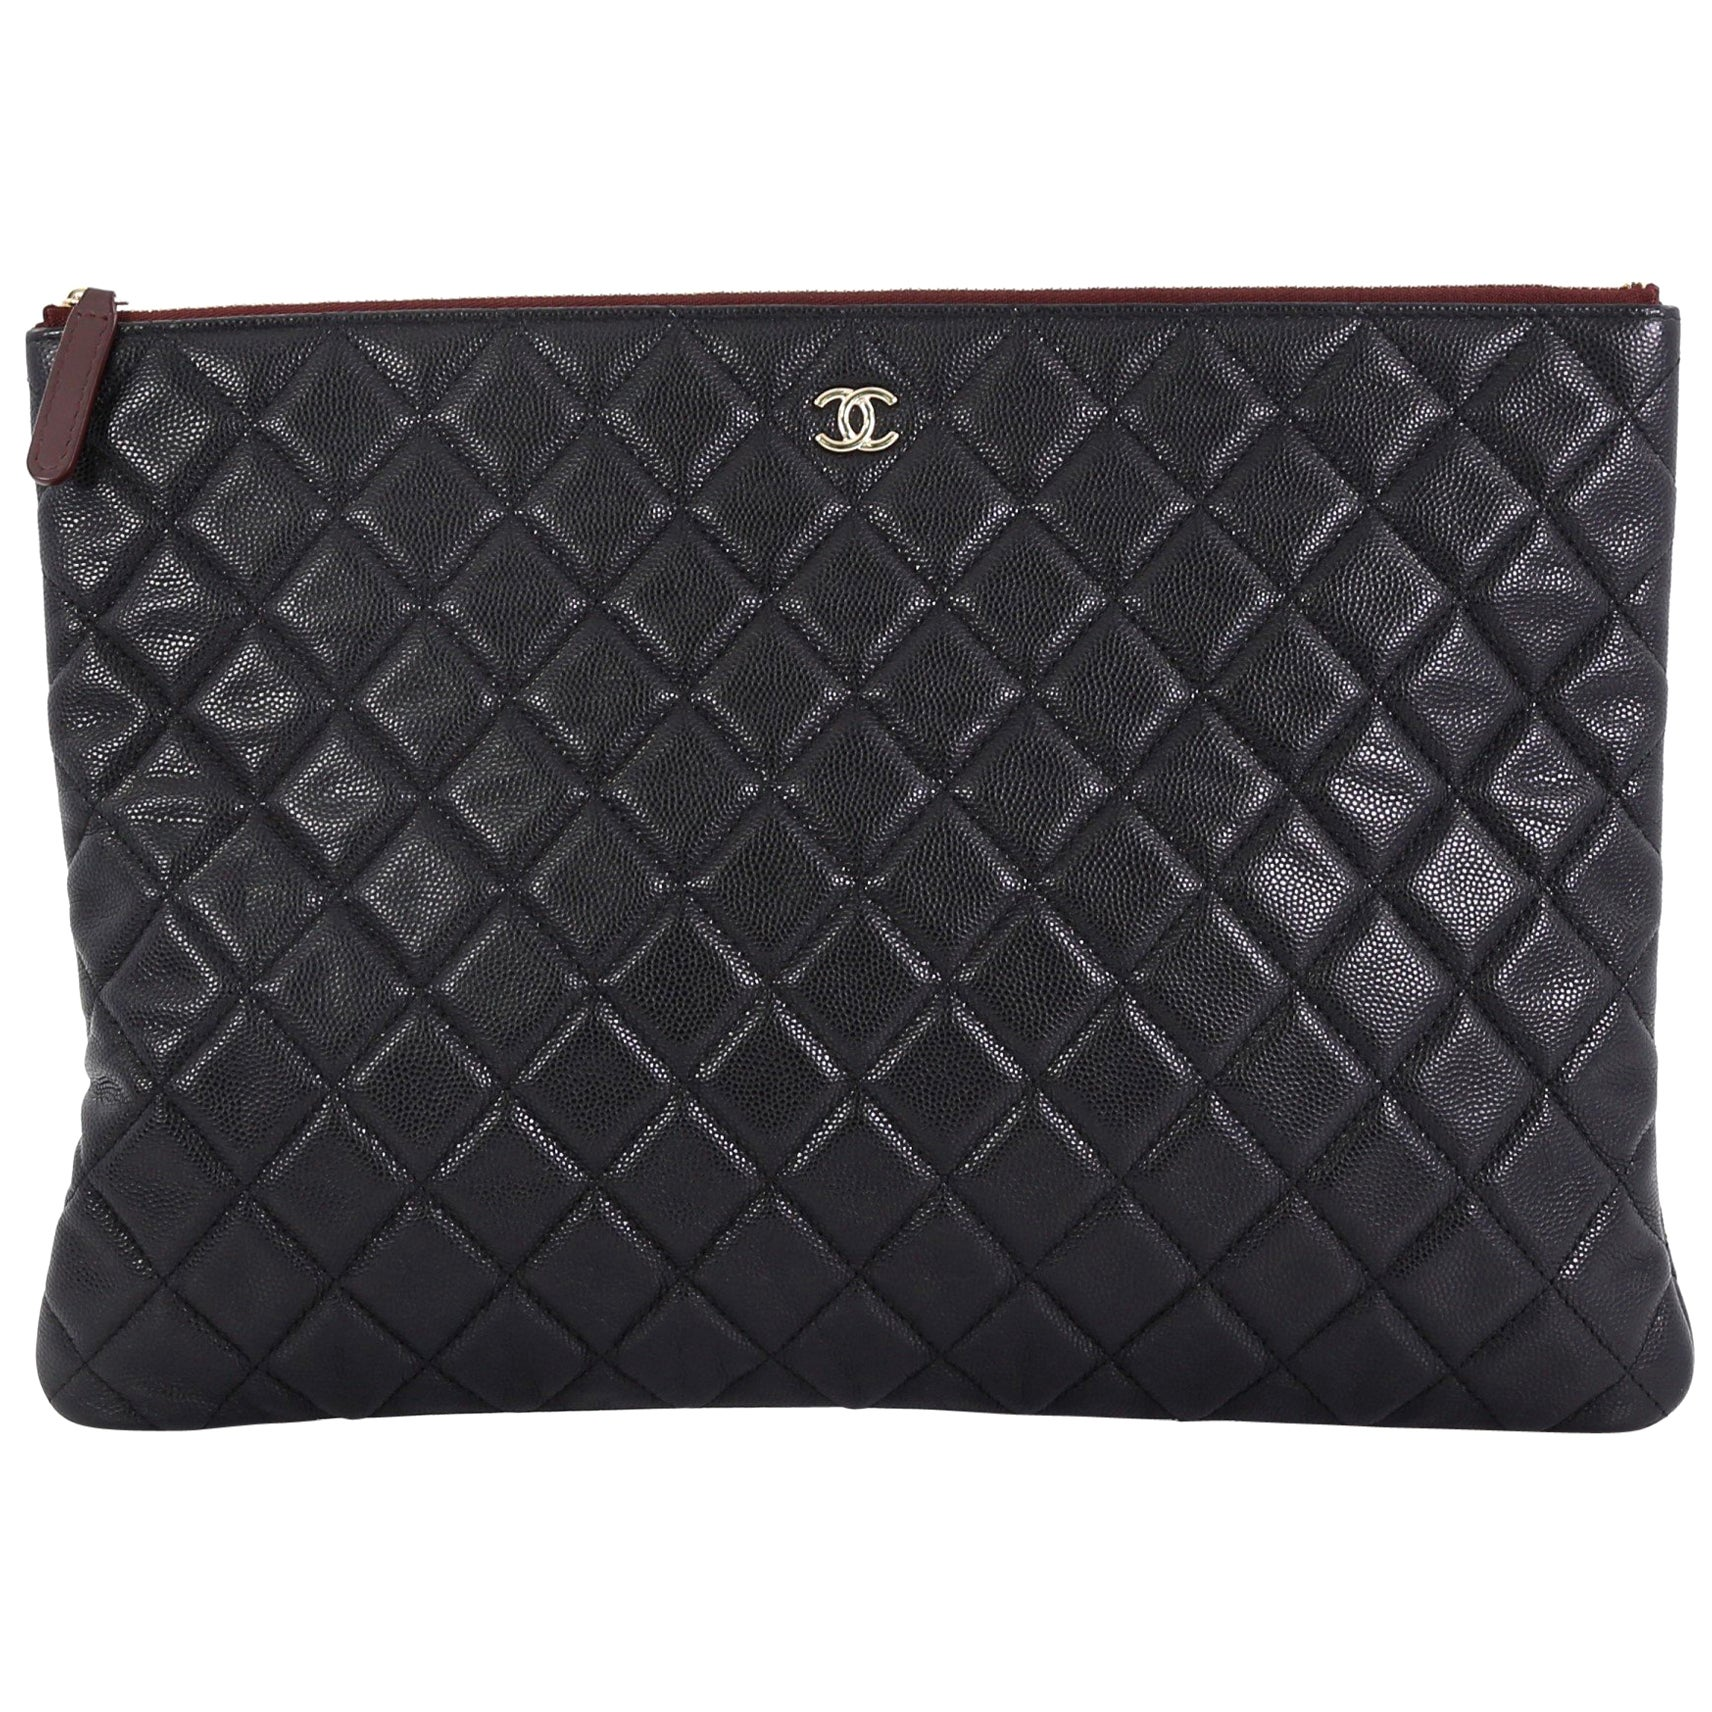 5a05fb9f04b780 Chanel O Case Clutch Quilted Caviar Large at 1stdibs